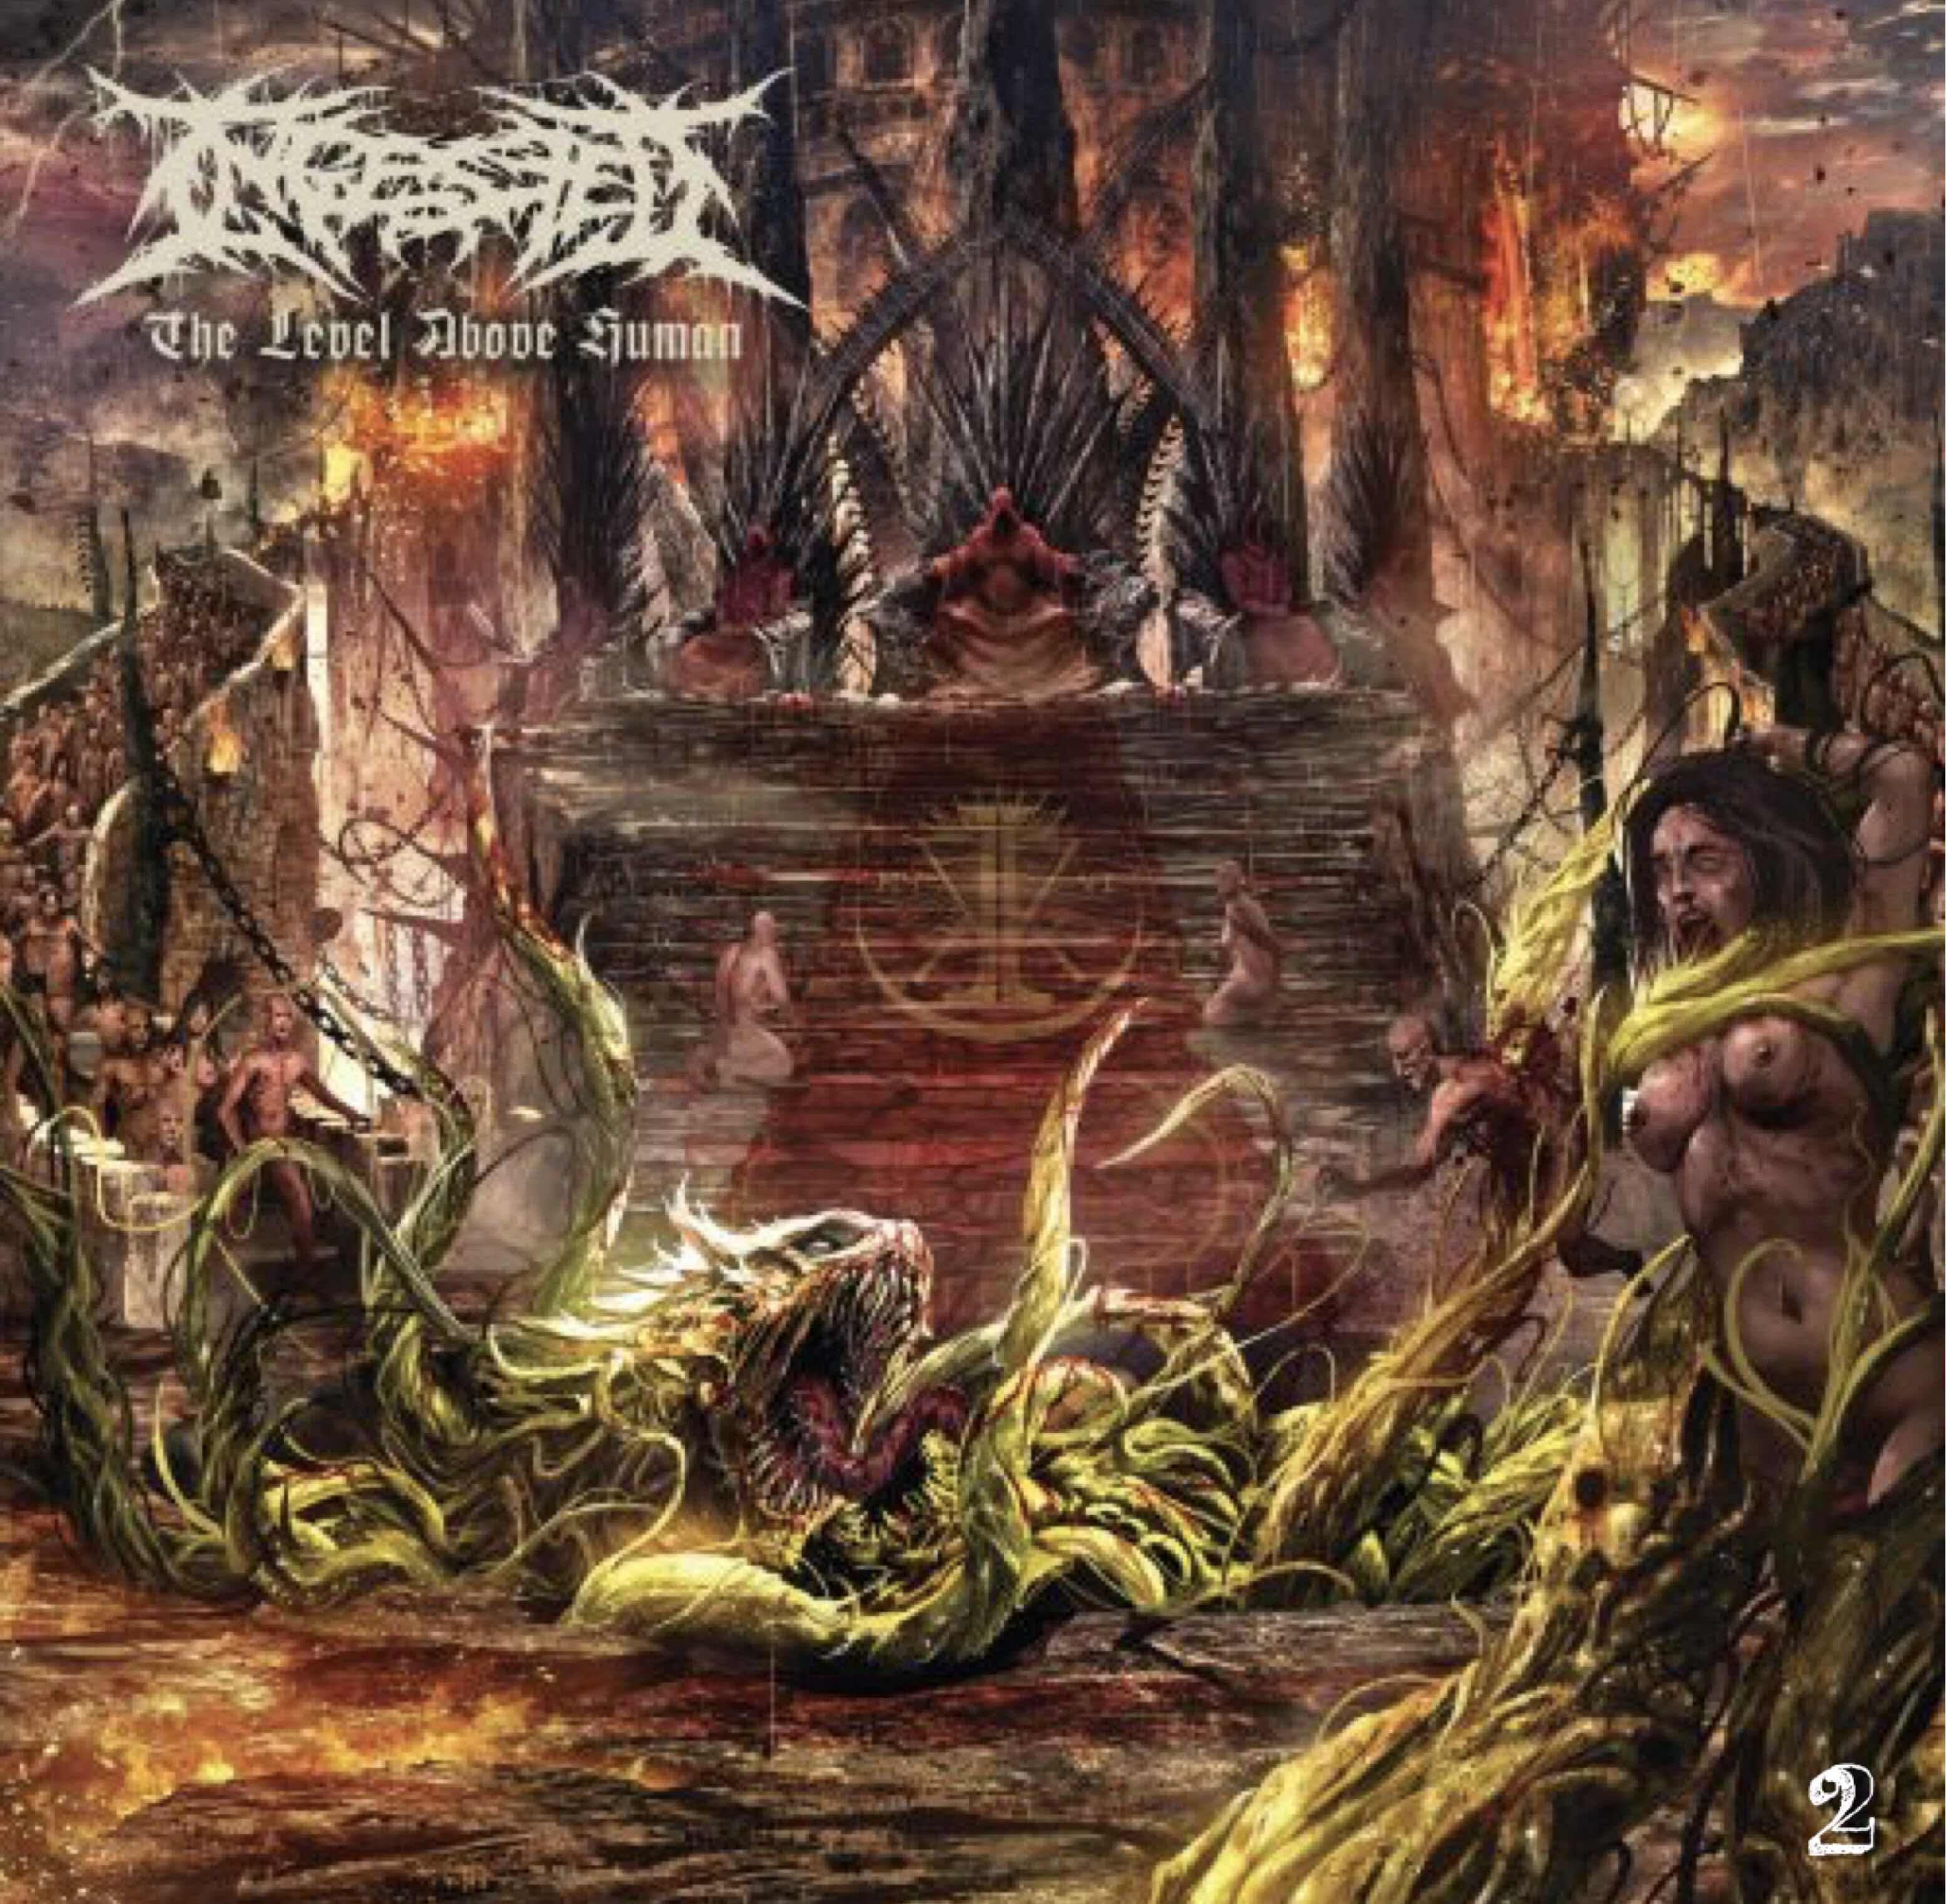 """Ingested """"The Level Above Human"""""""